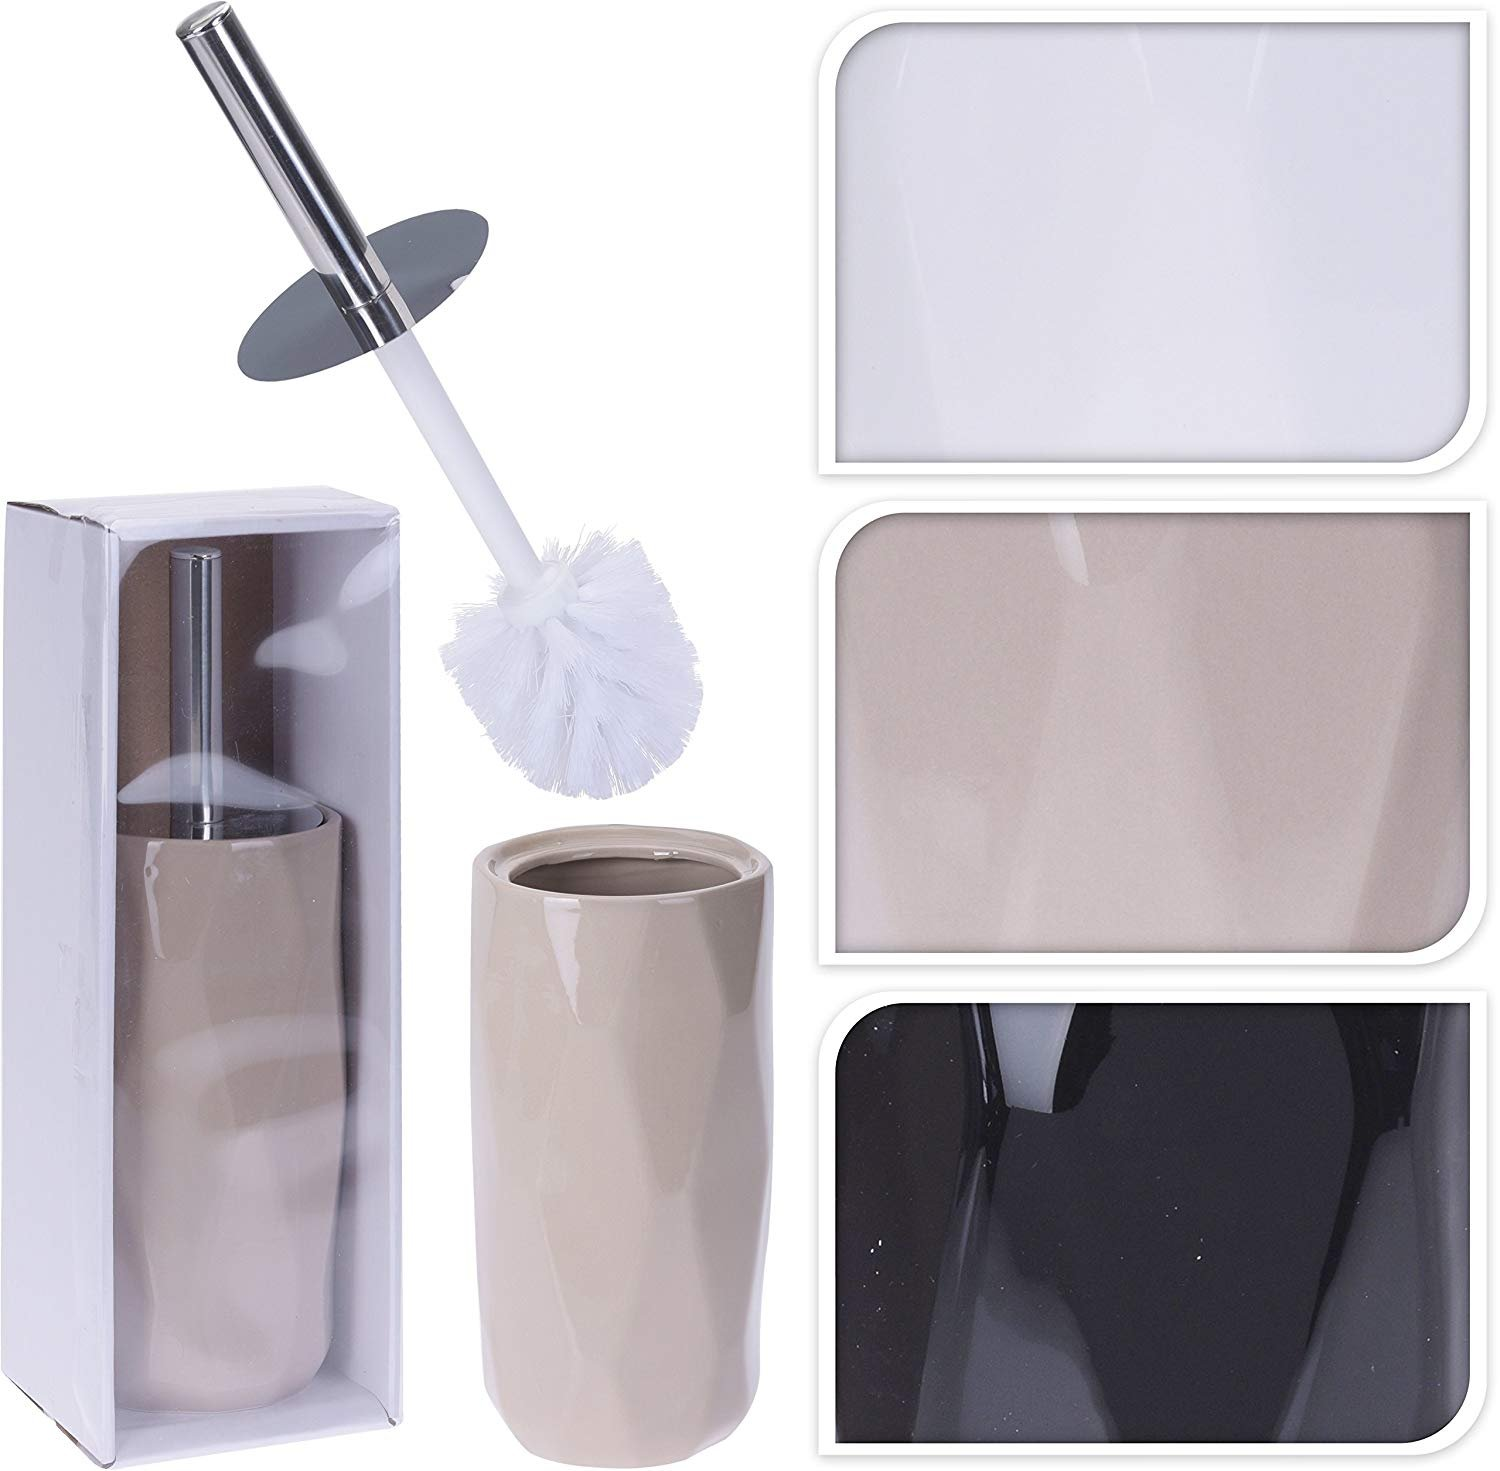 BATHROOM SET 6 PIECE ACCESSORY BIN SOAP DISH DISPENSER TUMBLER TOOTHBRUSH HOLDER (BLACK)